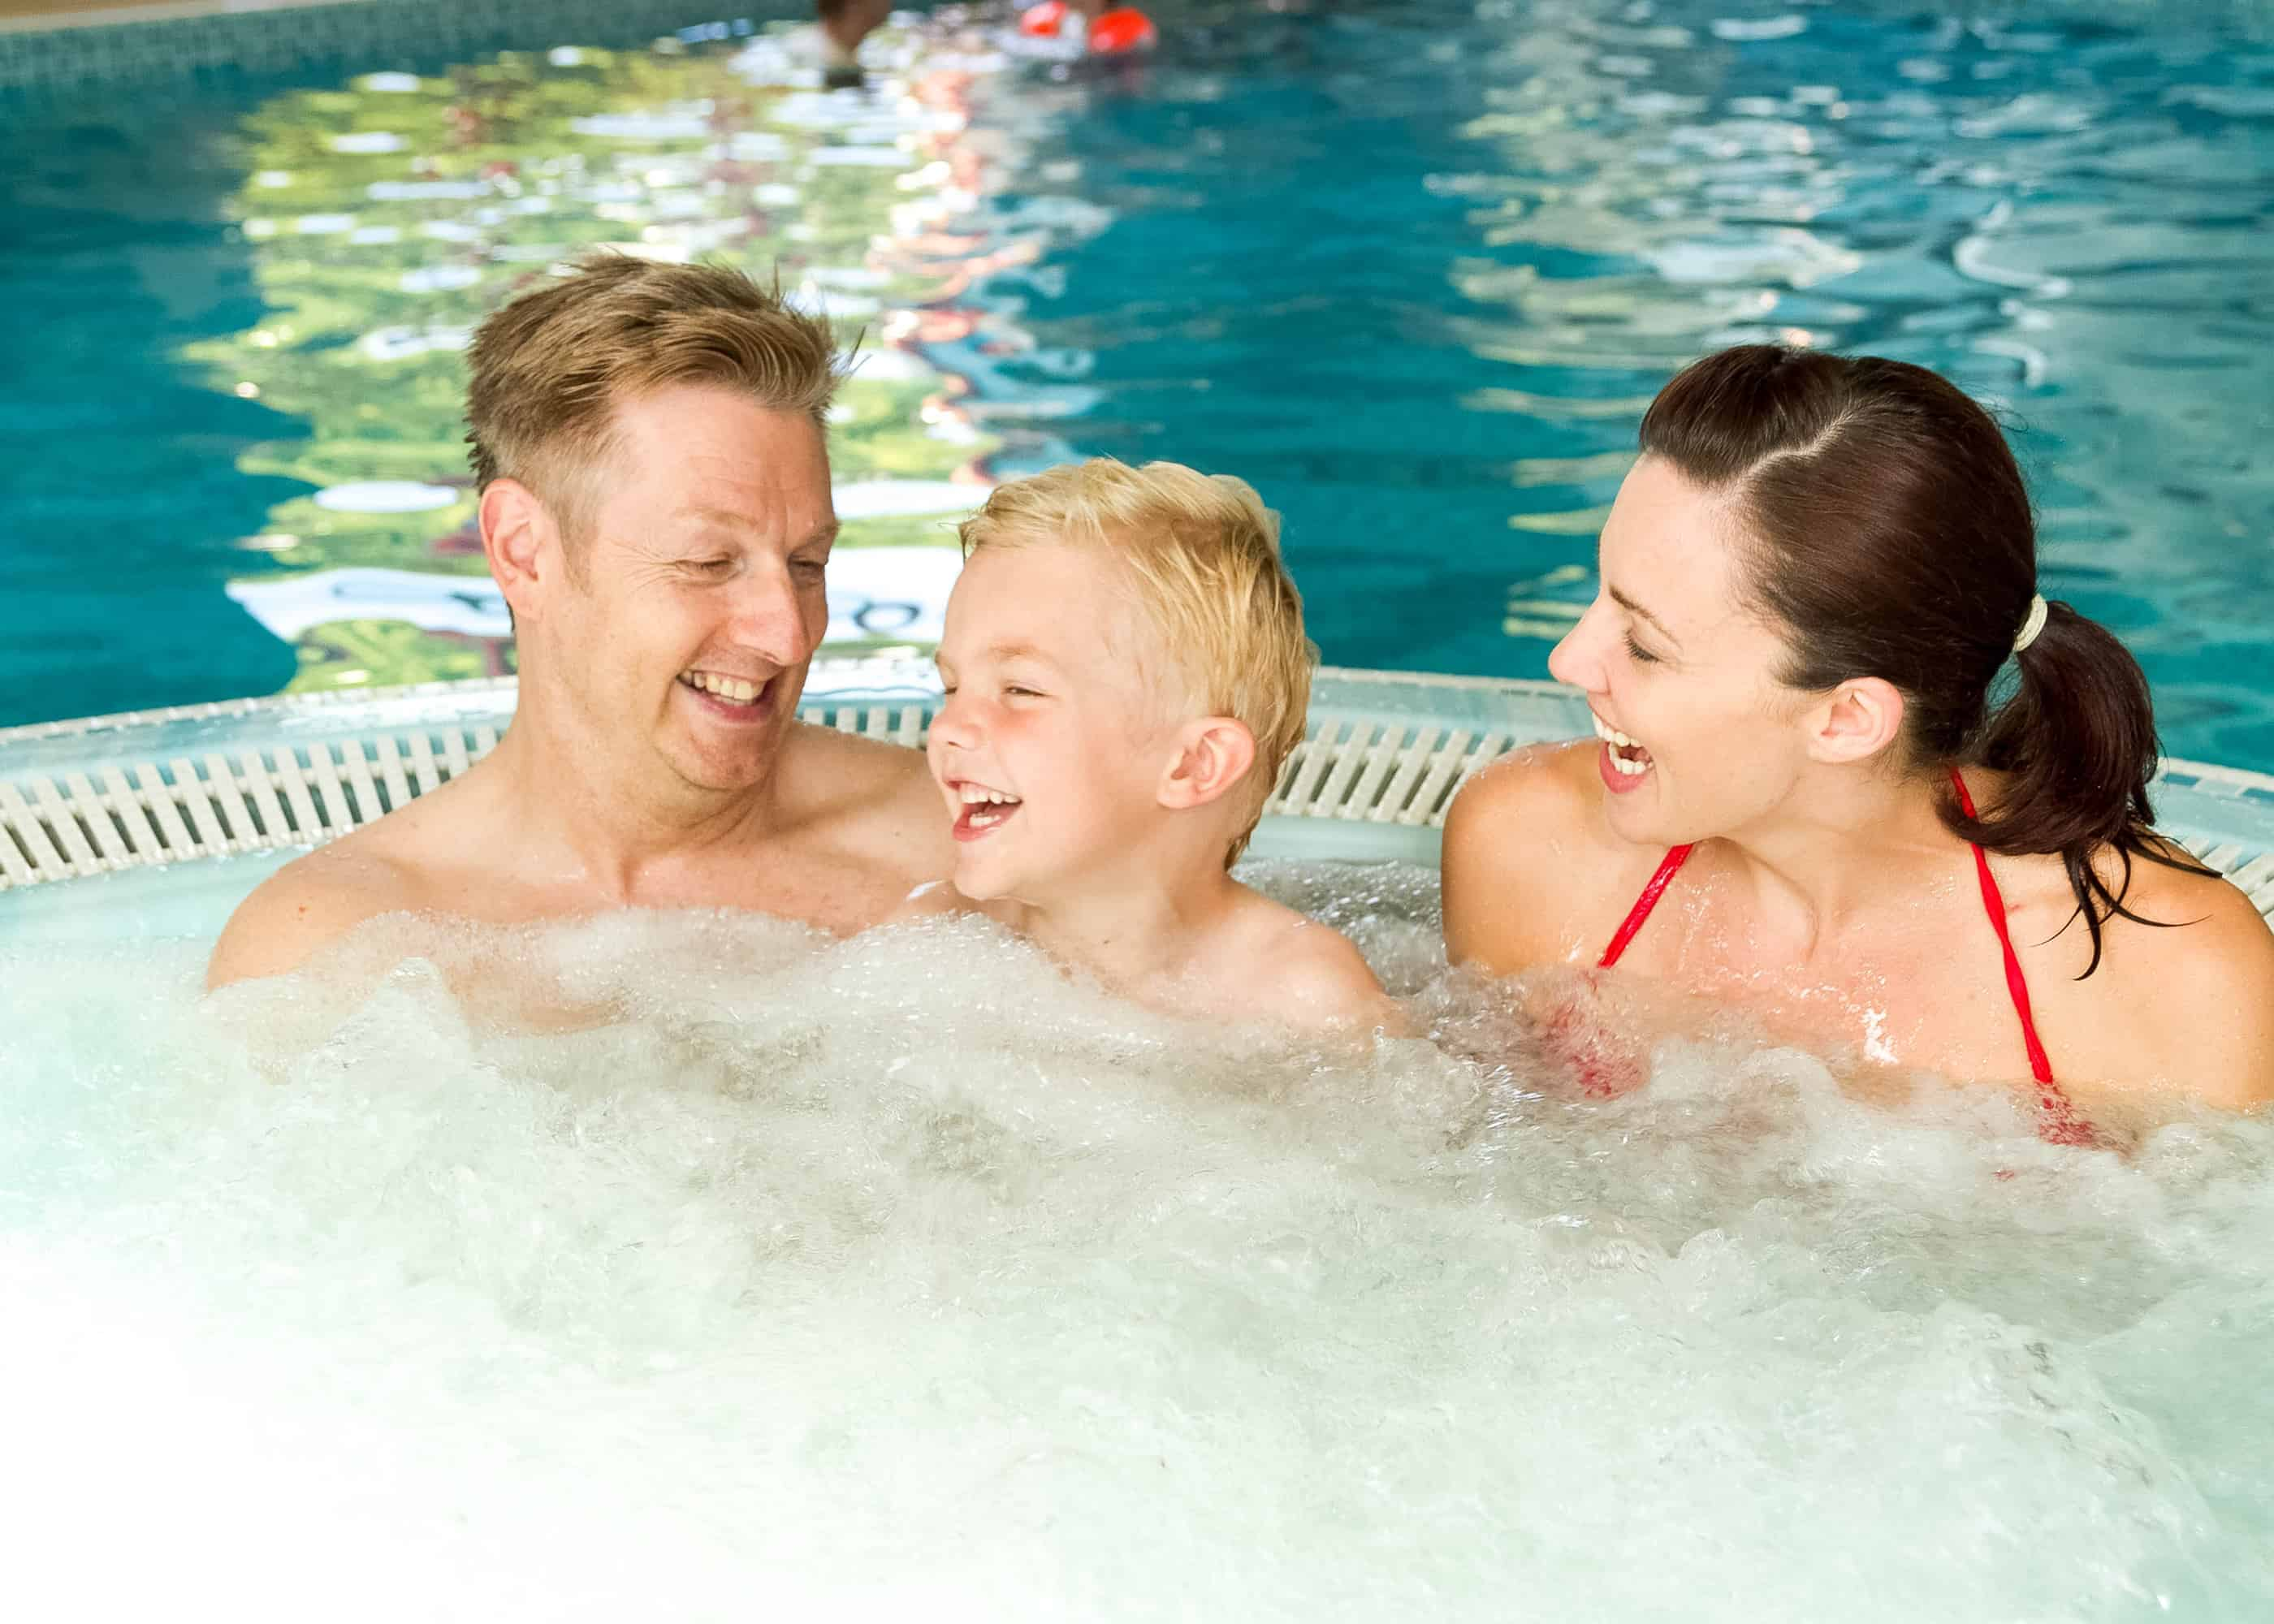 Facilities at Thurston Manor include an indoor swimming pool